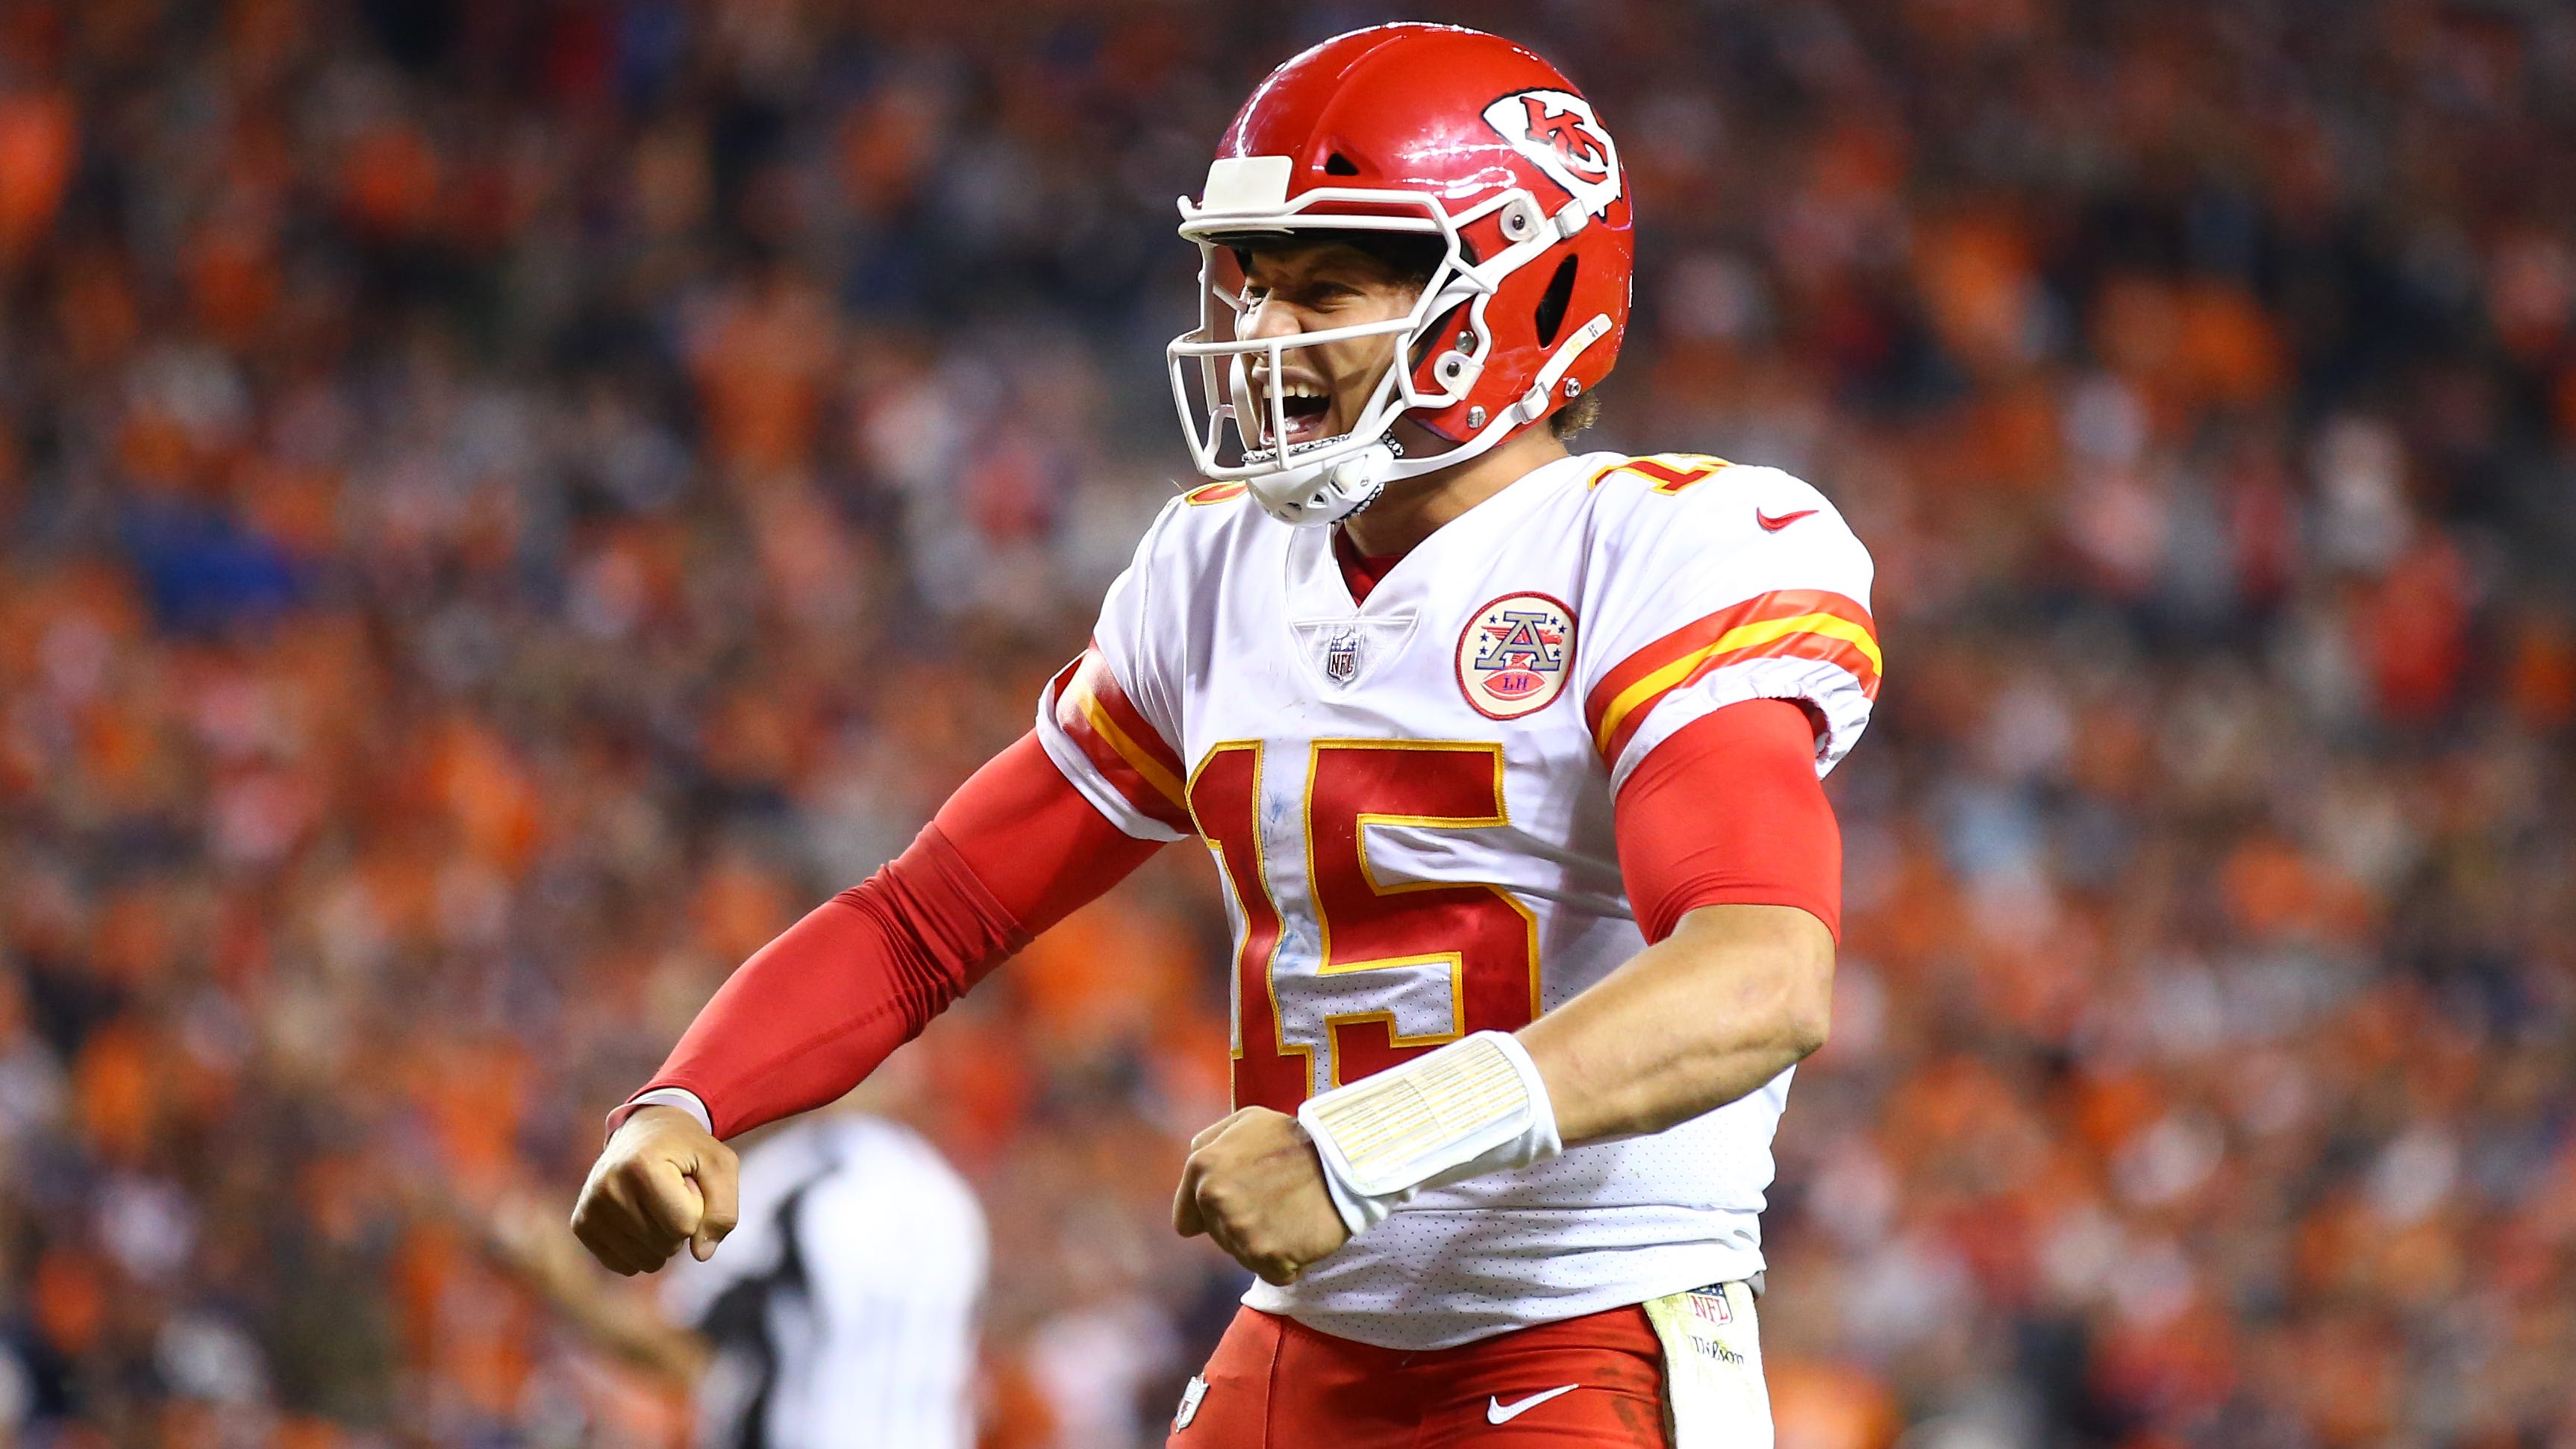 Chiefs Stay Unbeaten As Patrick Mahomes Leads Late Drive Vs Broncos